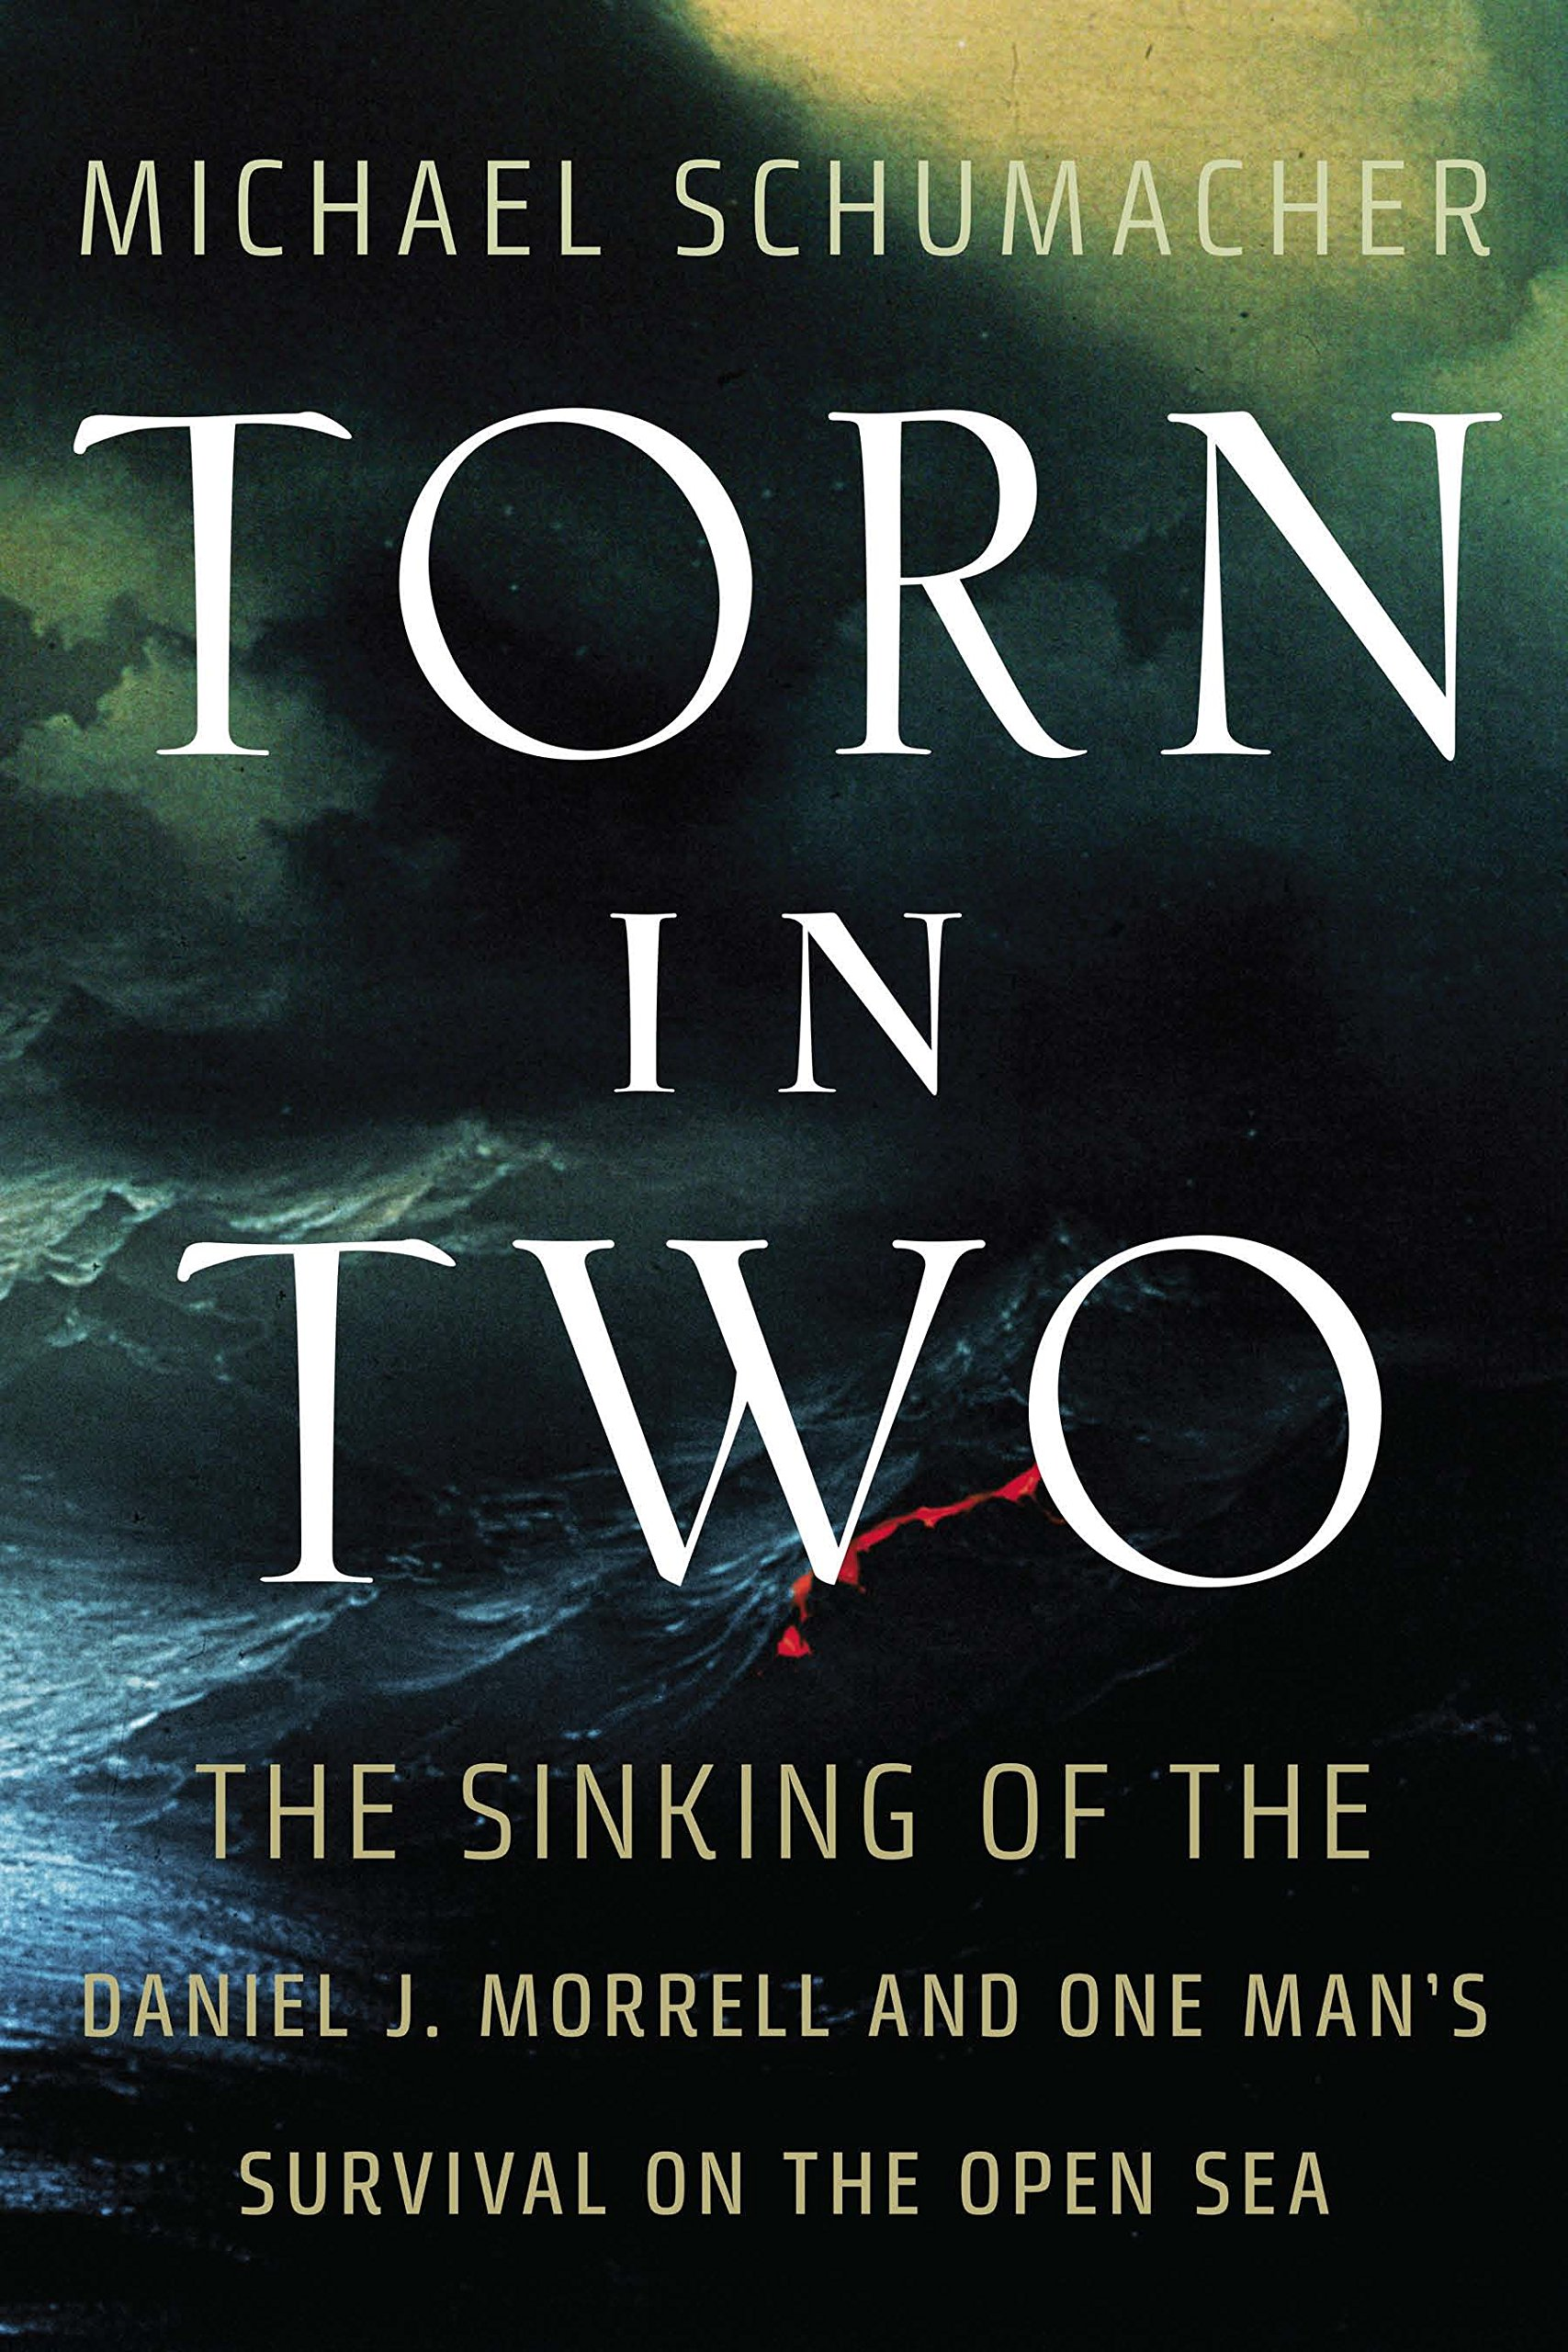 Download Torn in Two: The Sinking of the Daniel J. Morrell and One Man's Survival on the Open Sea ebook